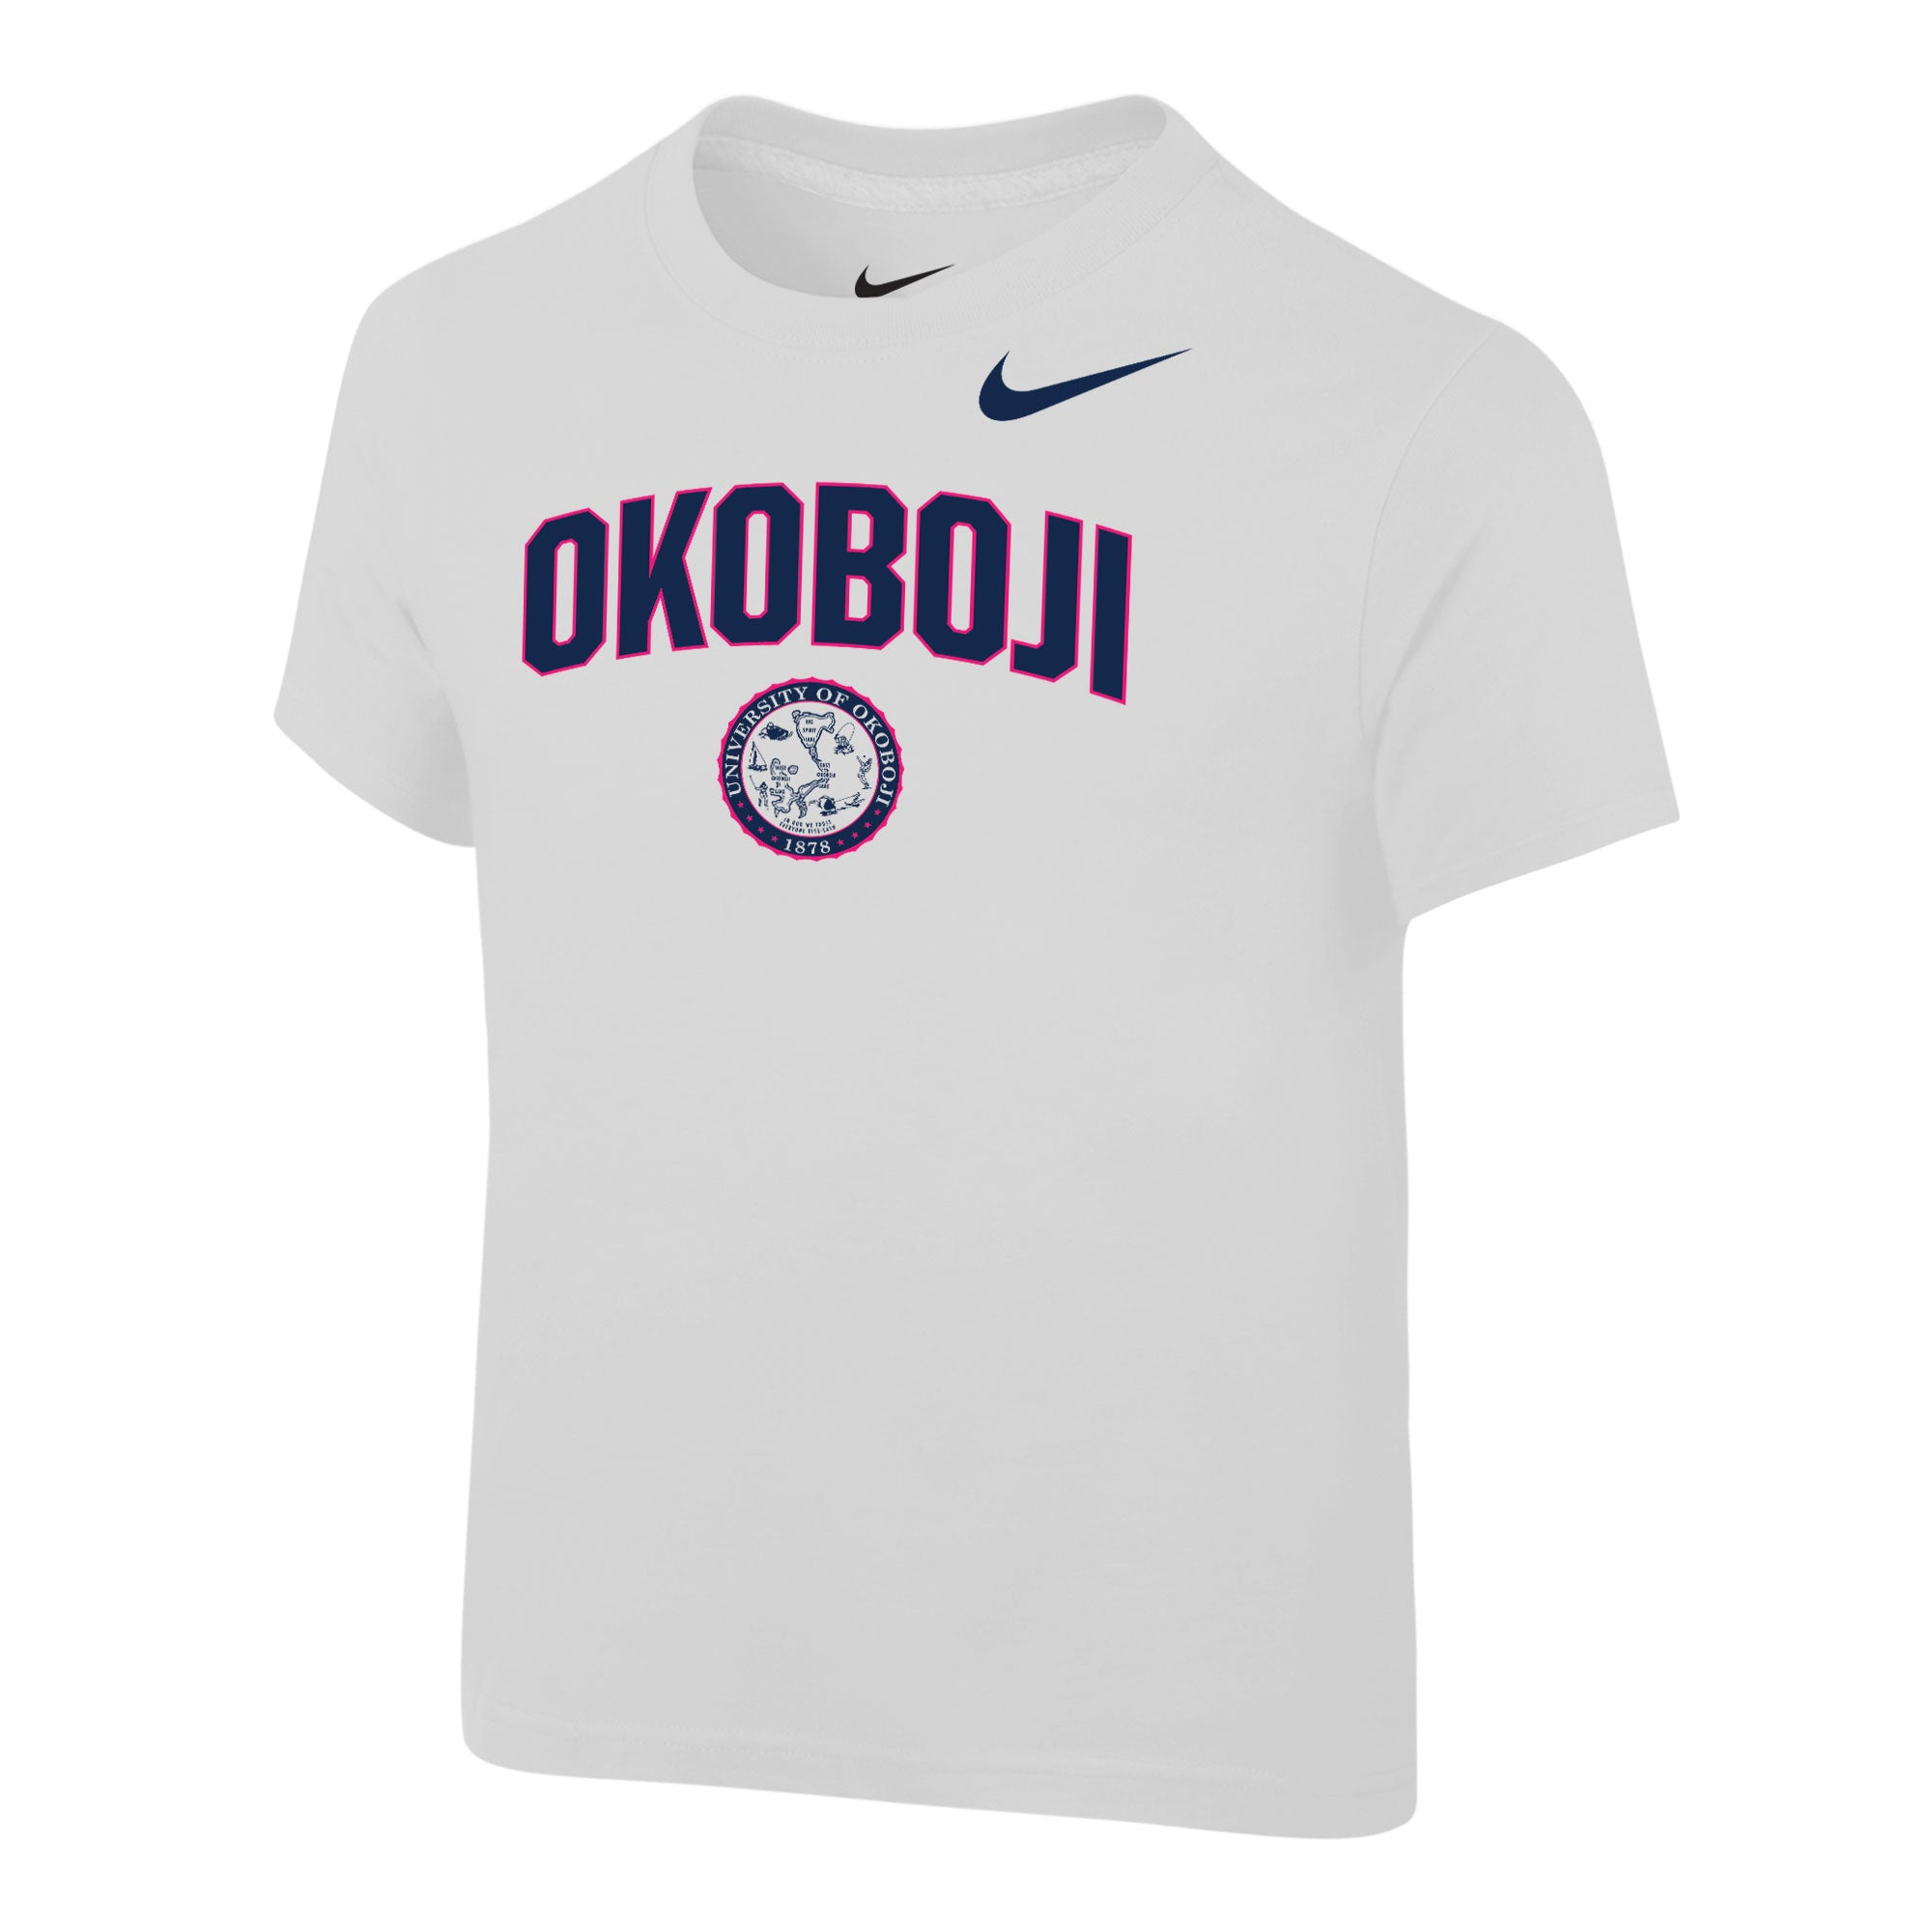 Okoboji Toddler NIKE Core Cotton Short Sleeve Tee - White